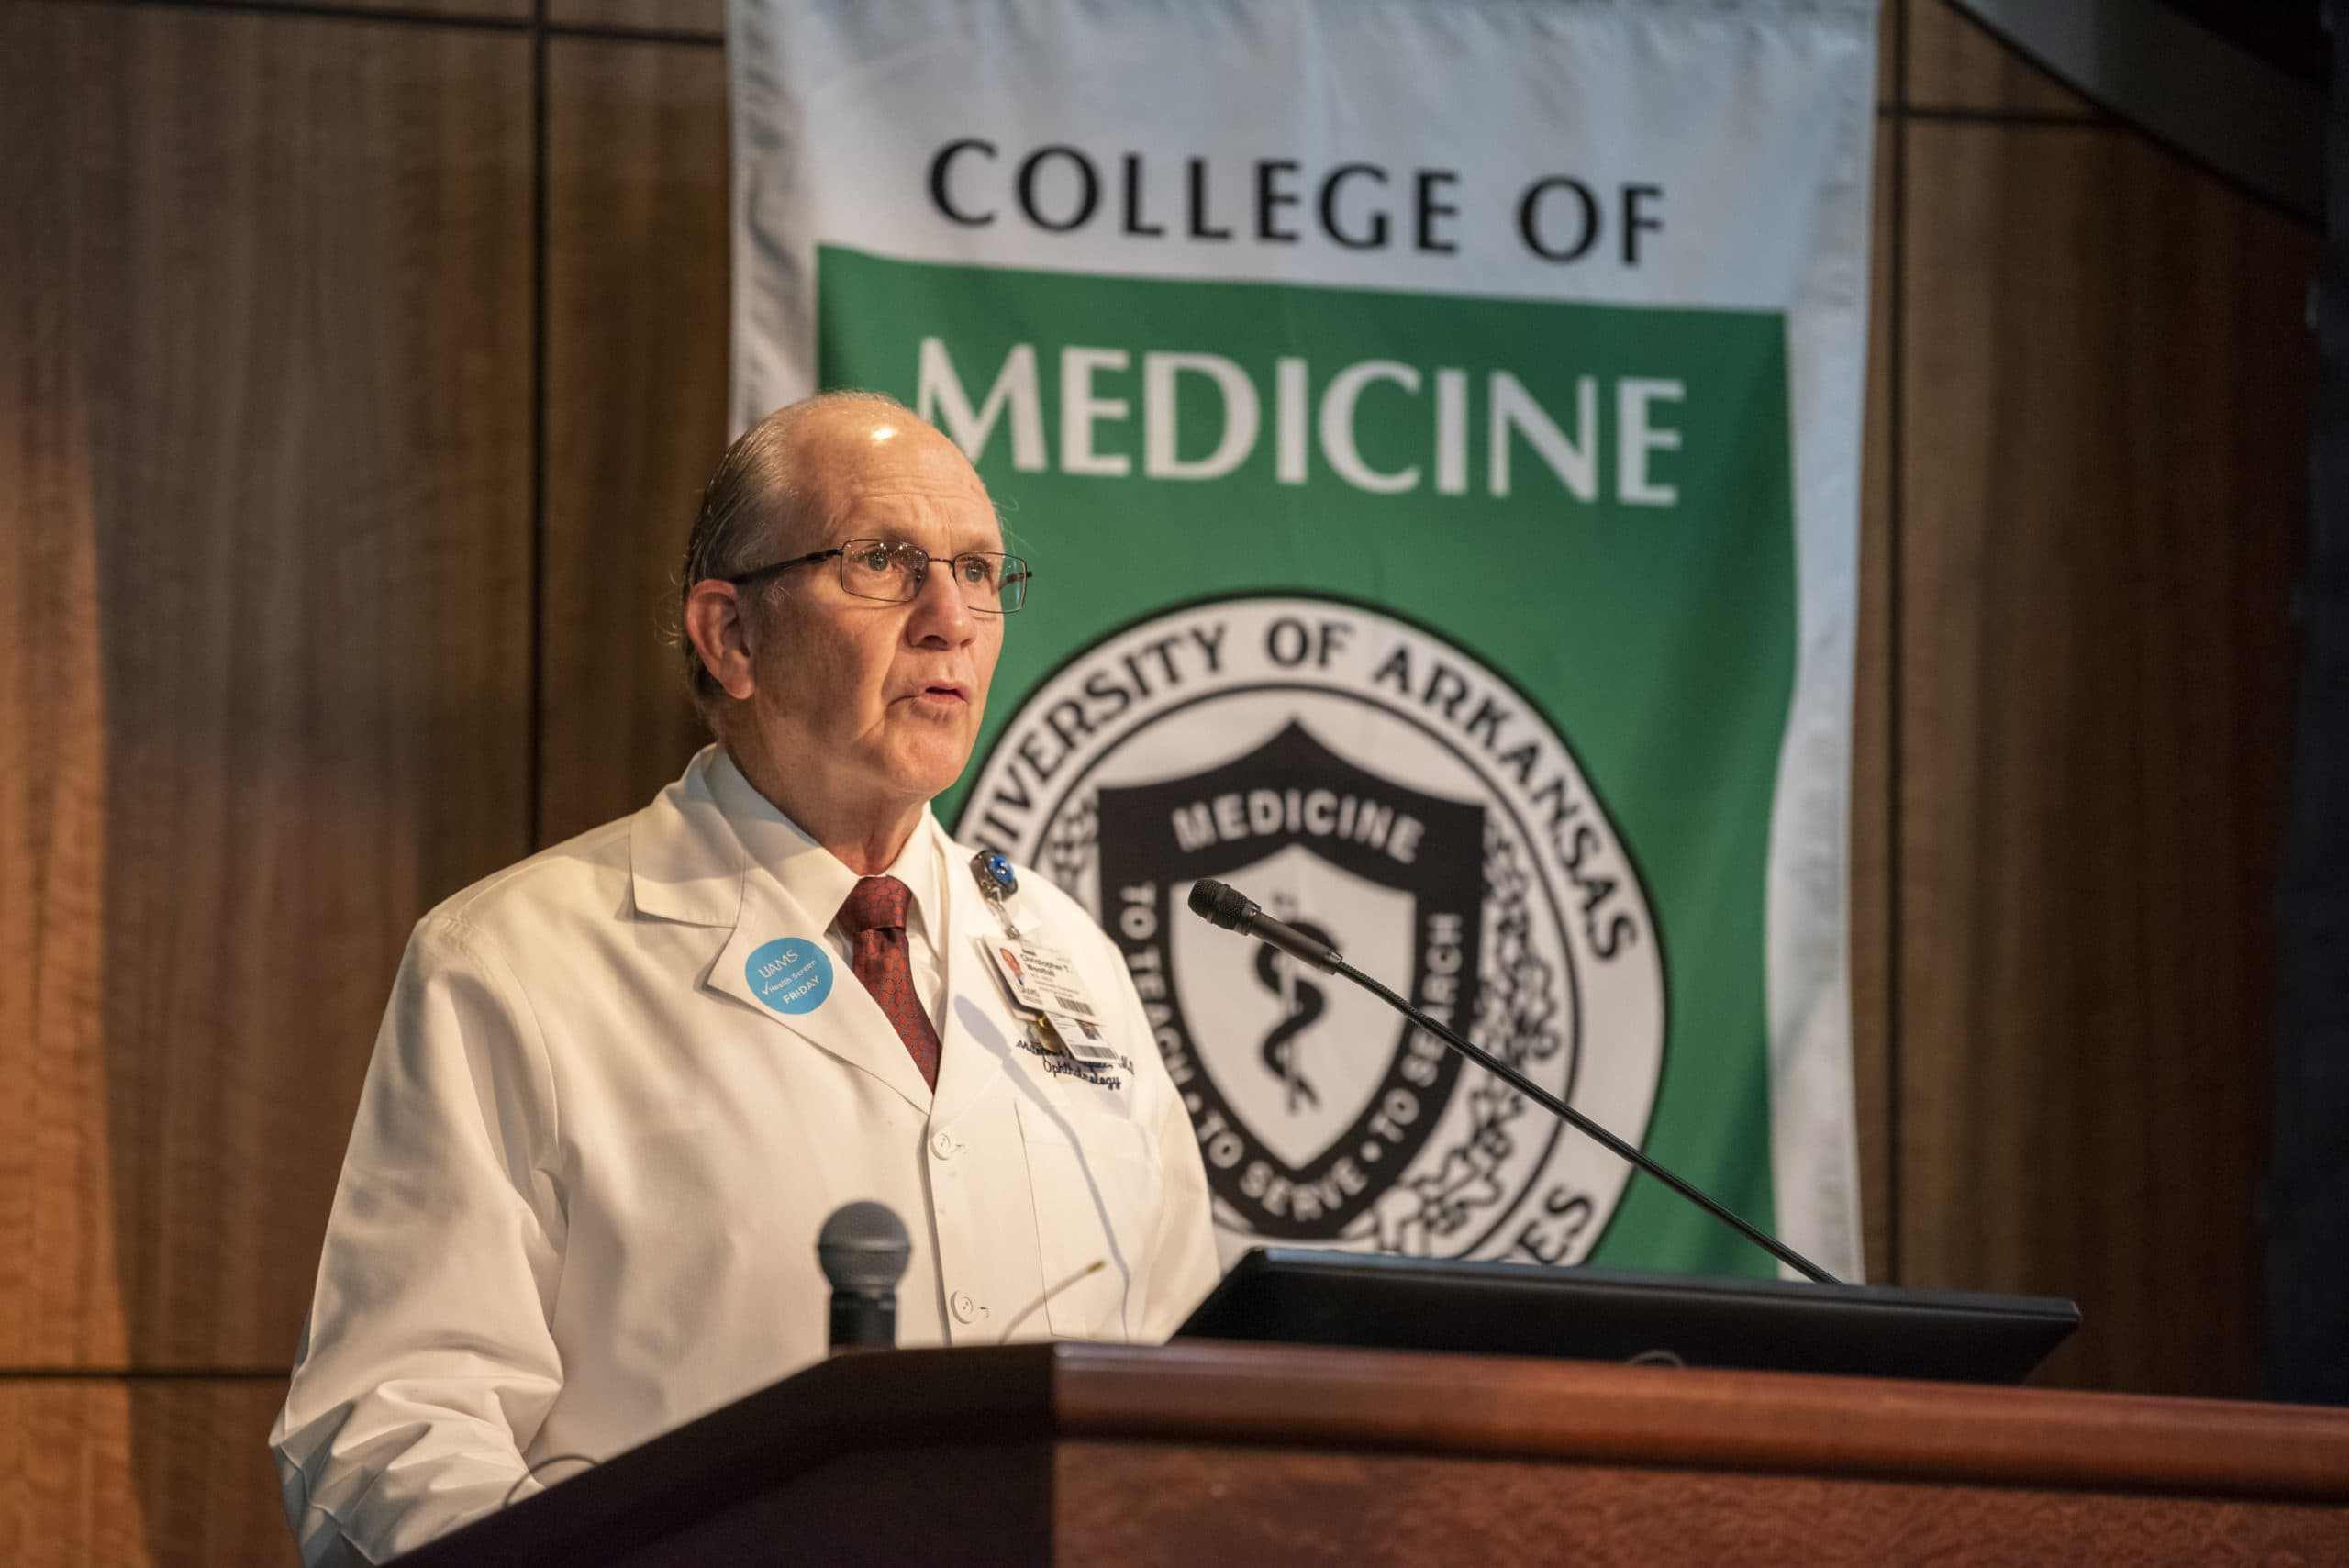 Christopher T. Westfall, M.D., dean of the UAMS College of Medicine, speaks at the 2020 white coat ceremony.